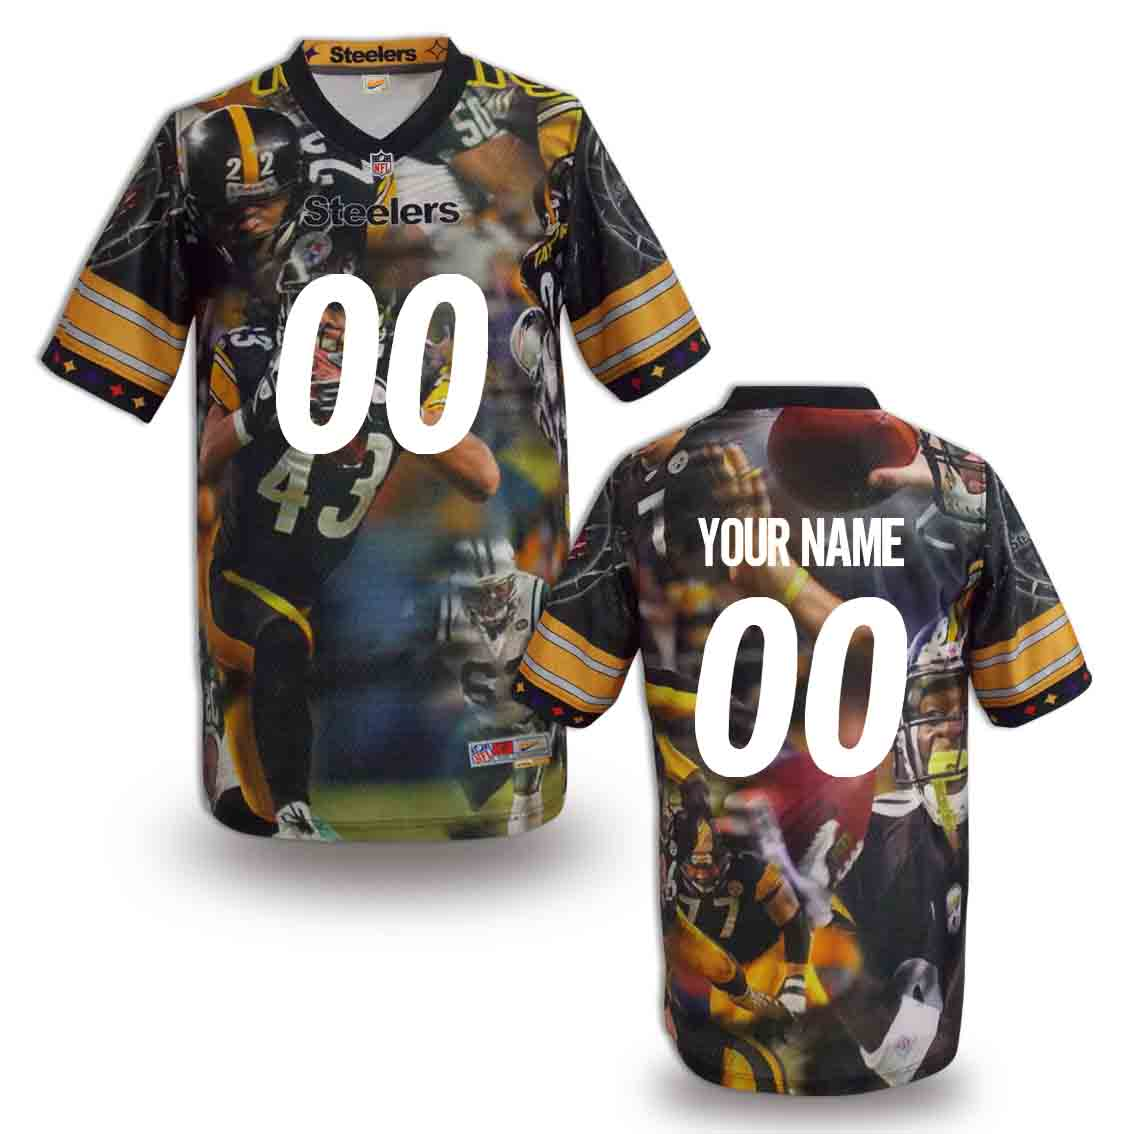 Nike Steelers Customized Fashion Stitched Jerseys02